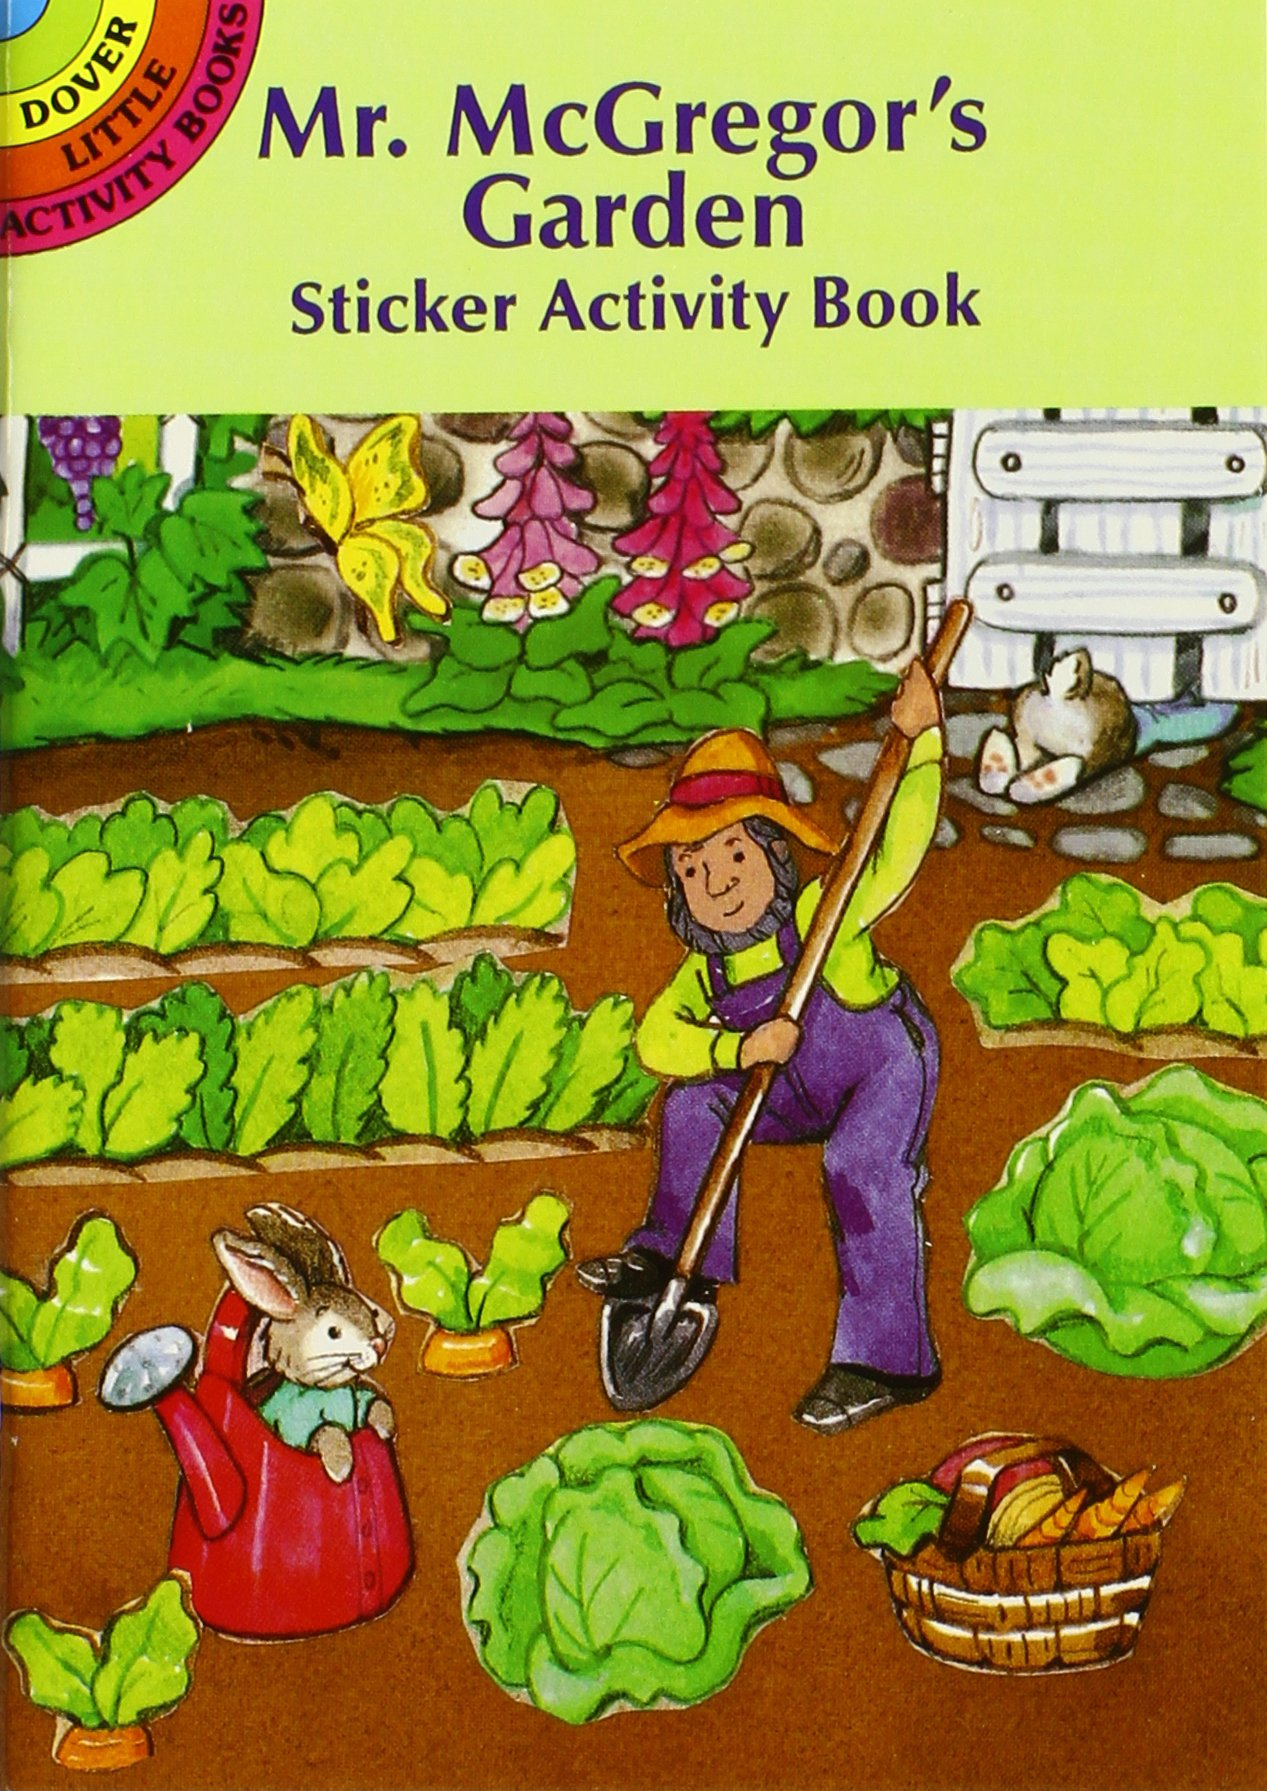 10 Easter Fun Books: Stickers, Stencils, Tattoos and More (Dover Little Activity Books) by Dover Publications (Image #8)